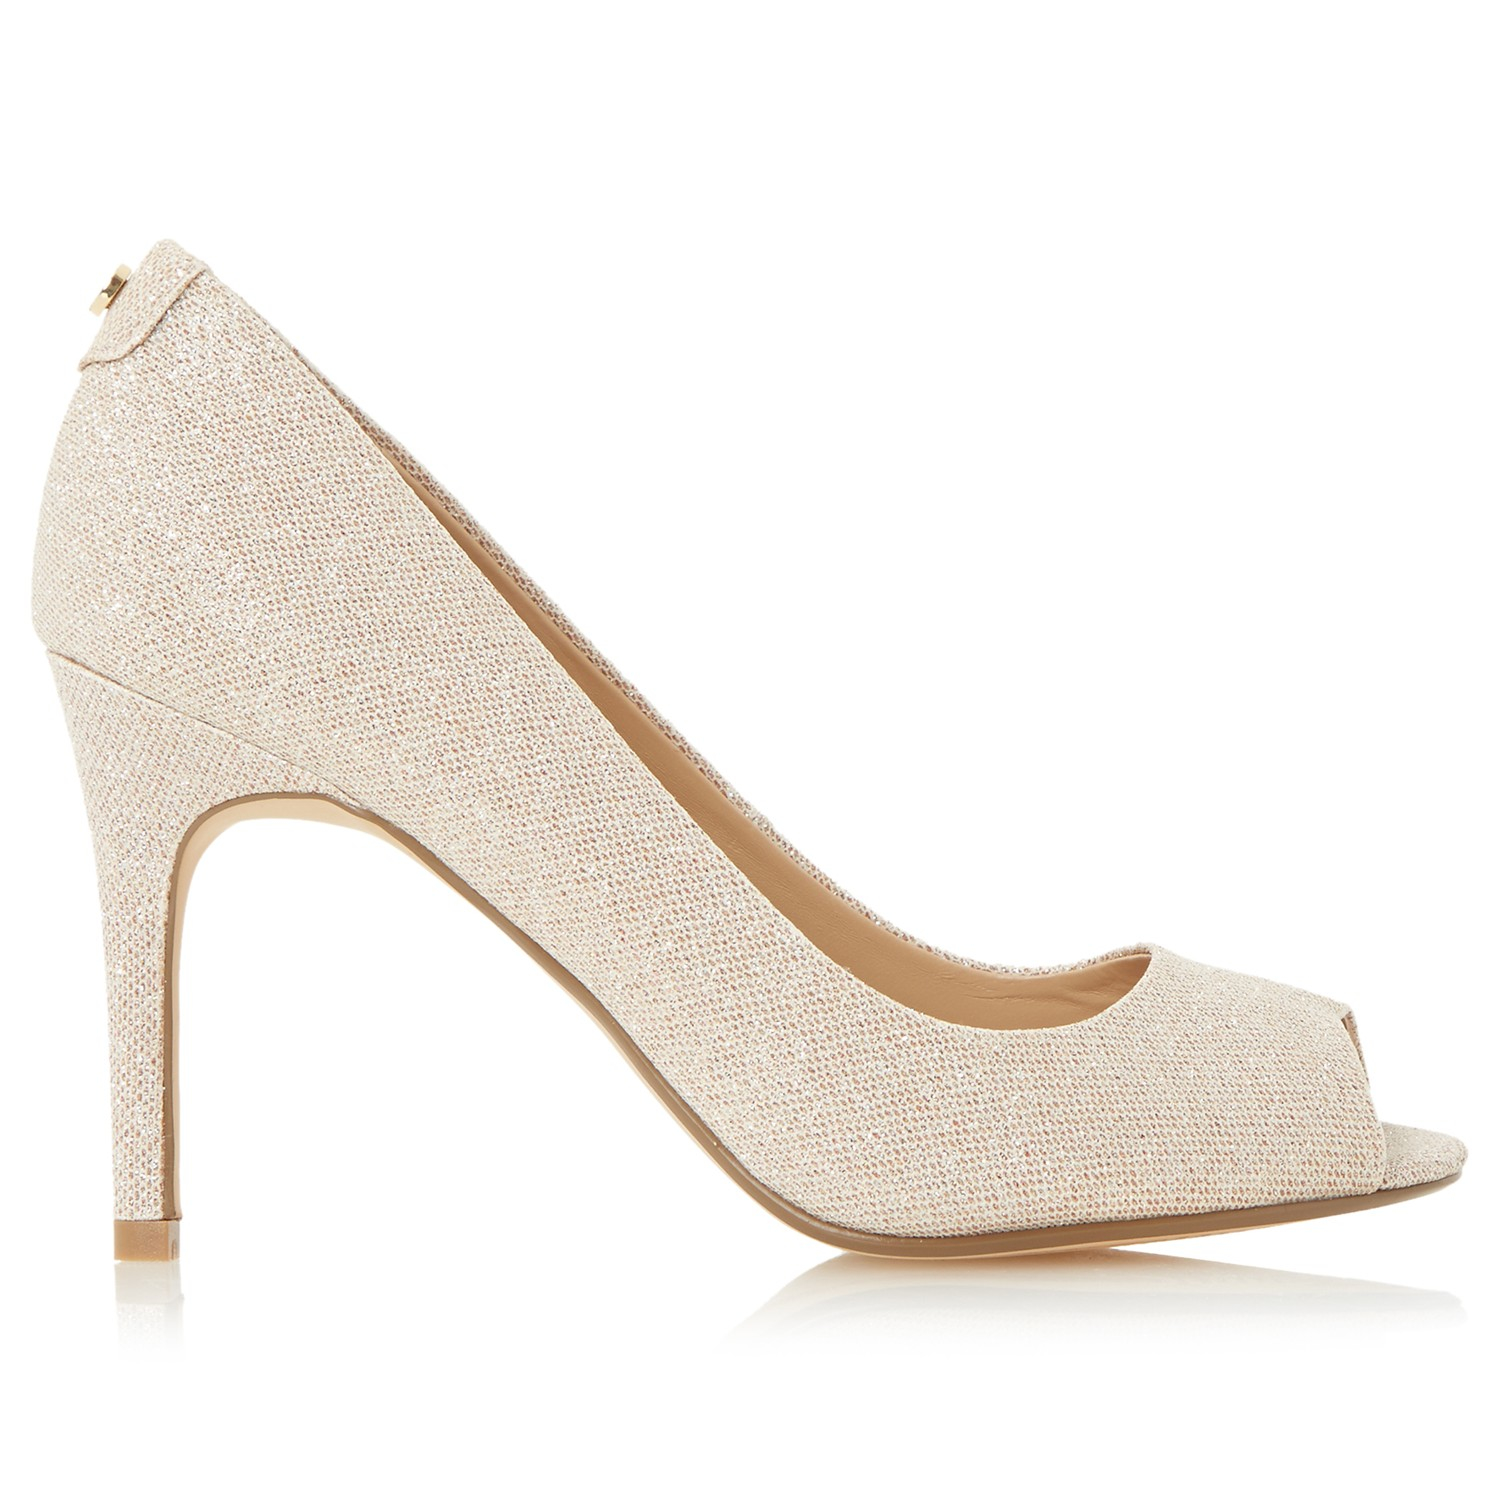 90f881726a0 Dune Dinah Peep Toe High Heel Court Shoes in Natural - Lyst